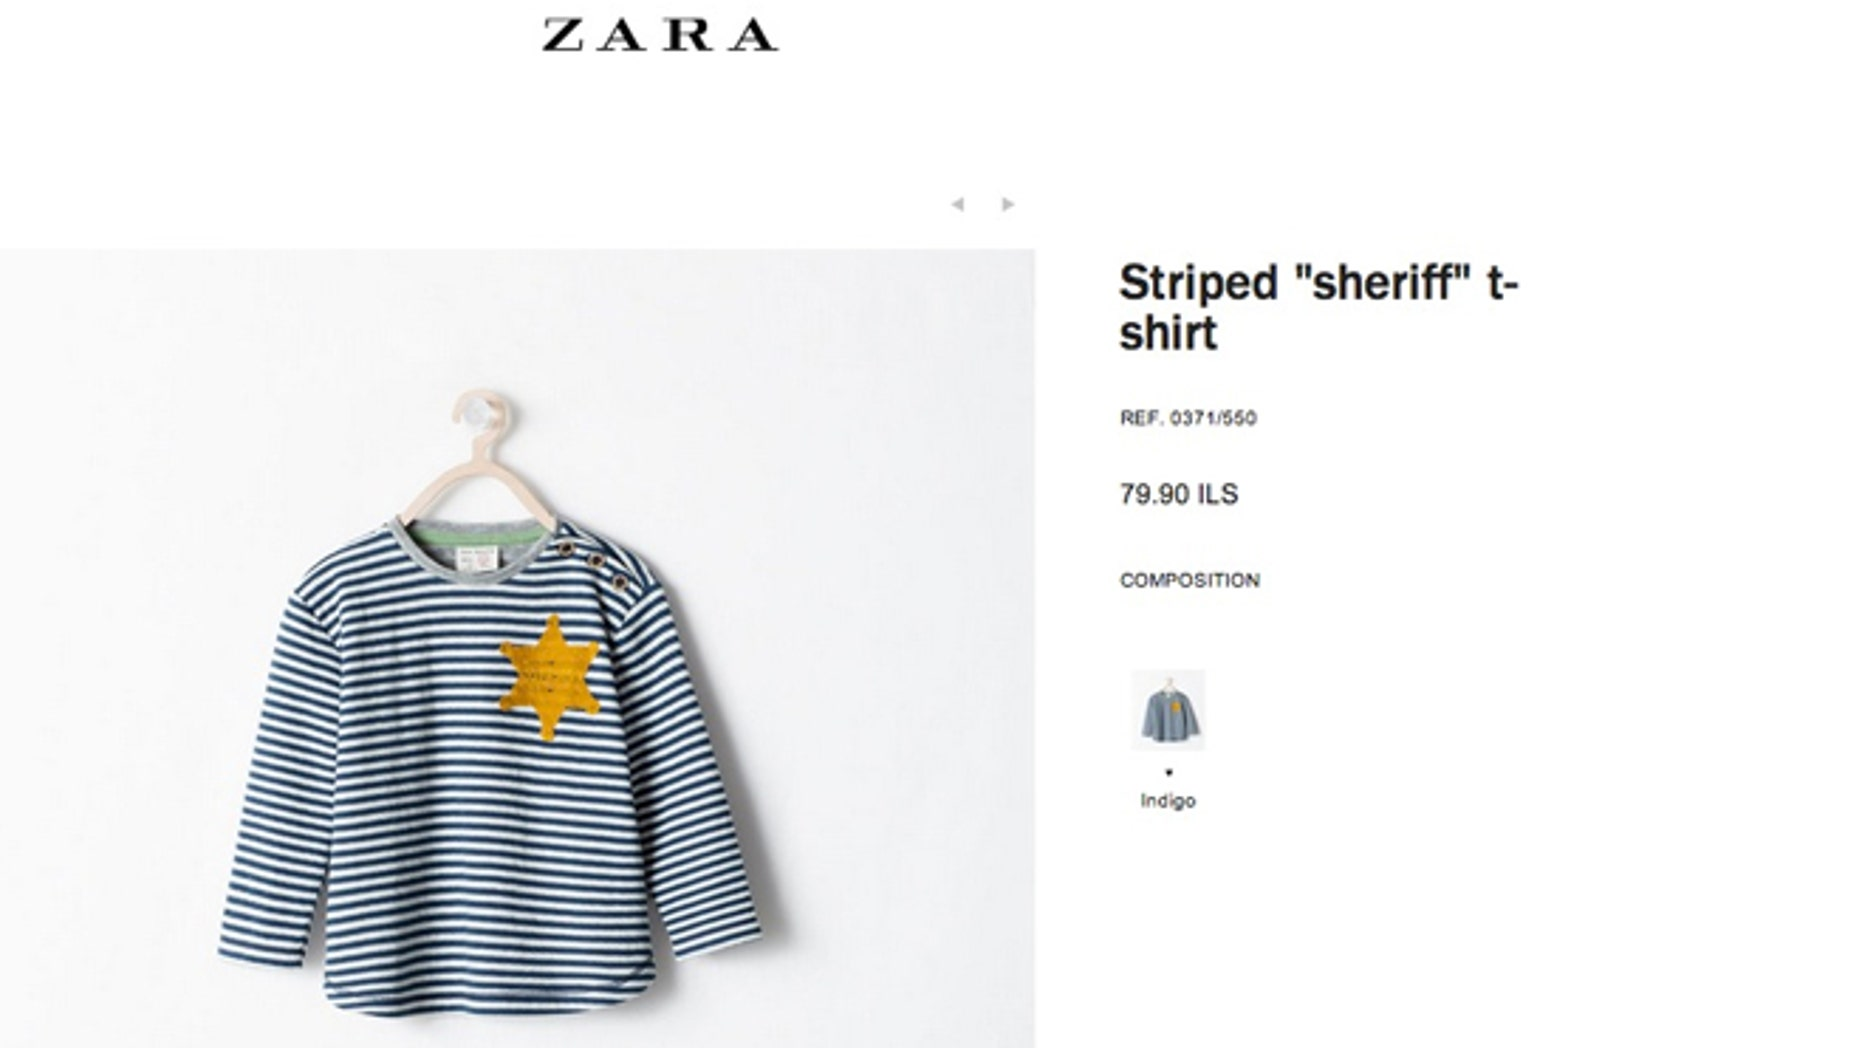 """The garment, which was marketed online as a striped """"sheriff"""" T-shirt, has been removed following complaints by critics who blasted it as insensitive and out of touch for its similarity to clothing Nazis required Jews to wear in concentration camps throughout Europe during World War II."""